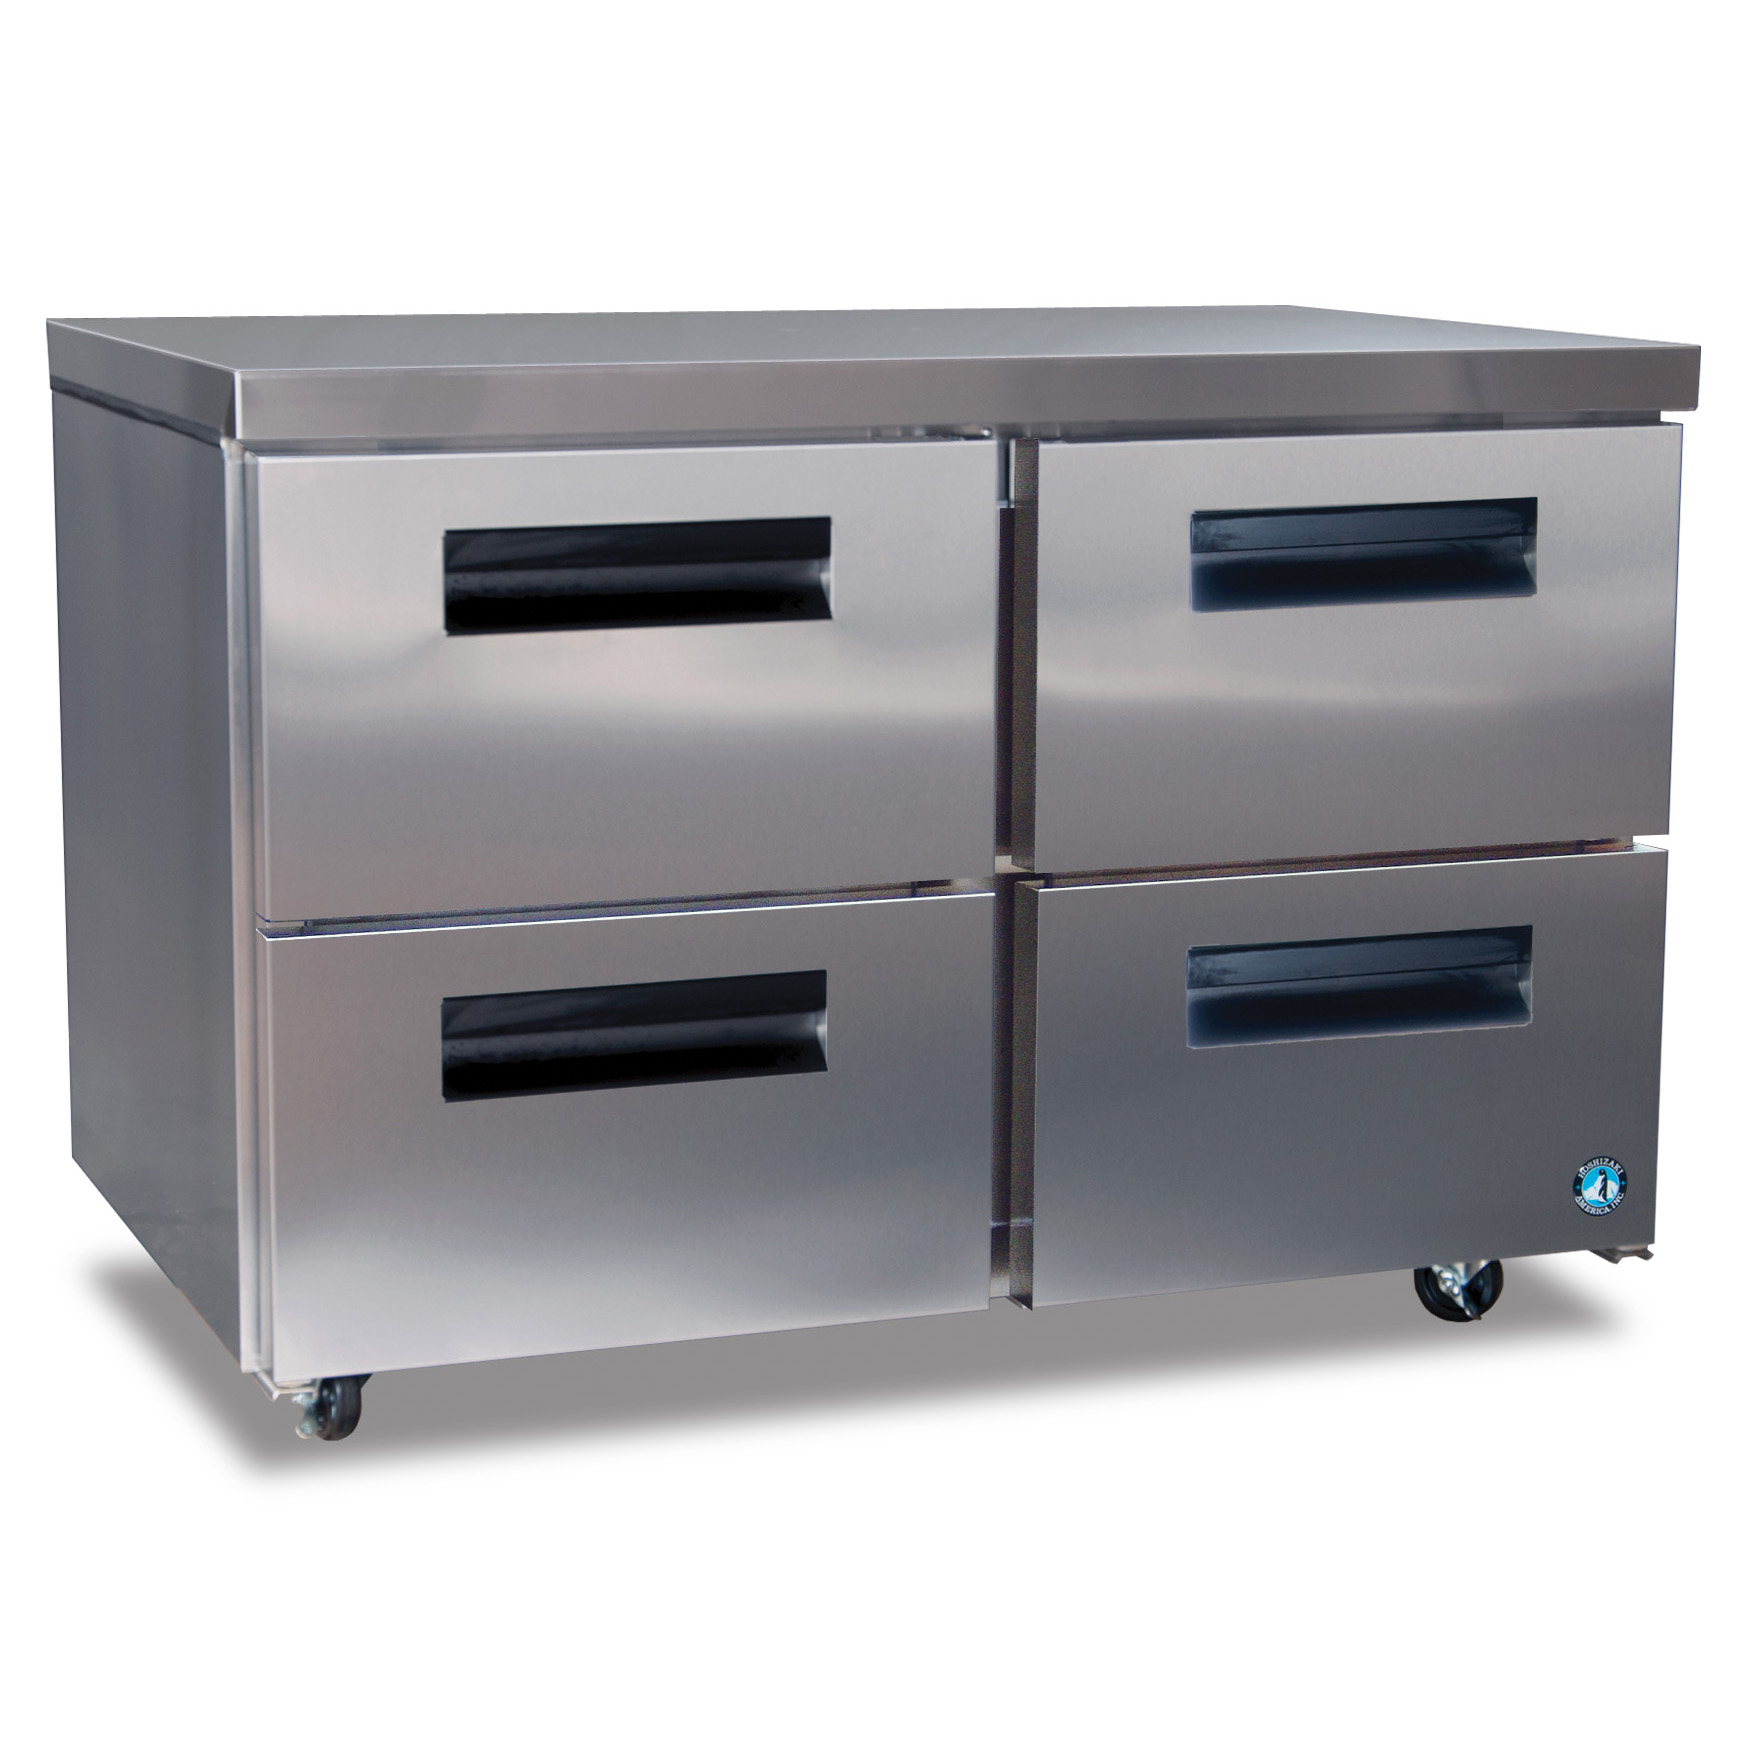 48  Undercounter Freezer with 4 Drawers